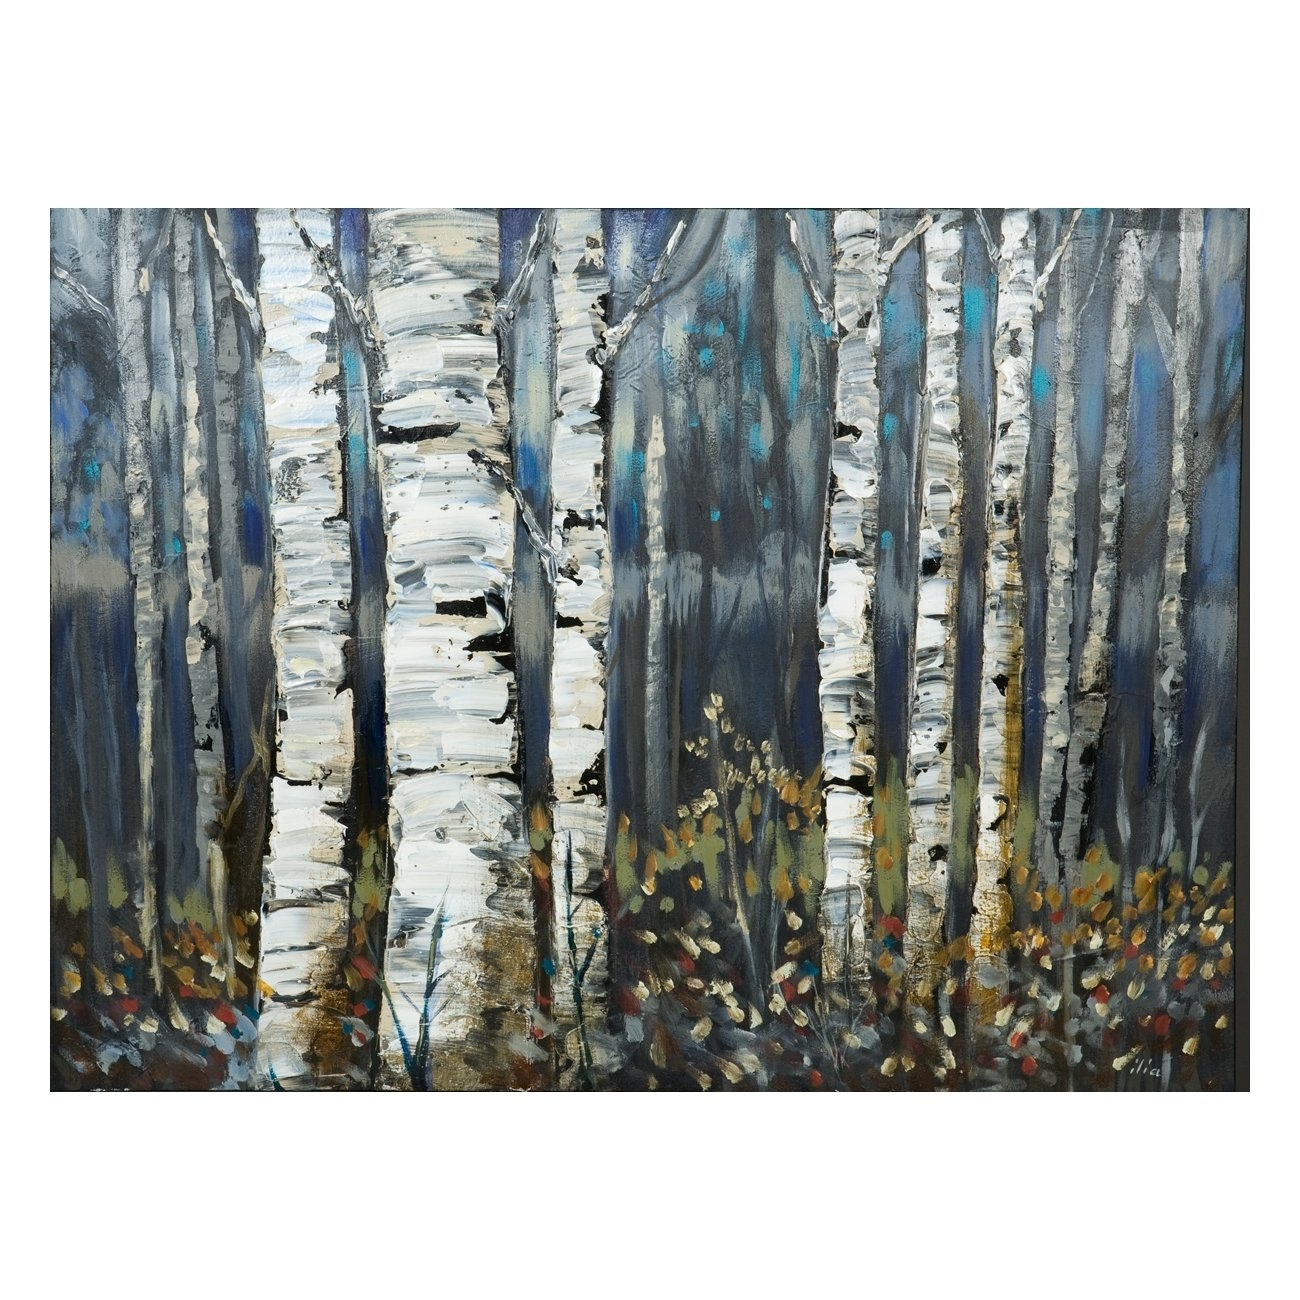 Laila's Ili142 11F Birch Trees Canvas Art | Lowe's Canada With Most Recent Abstract Wall Art Canada (View 7 of 20)